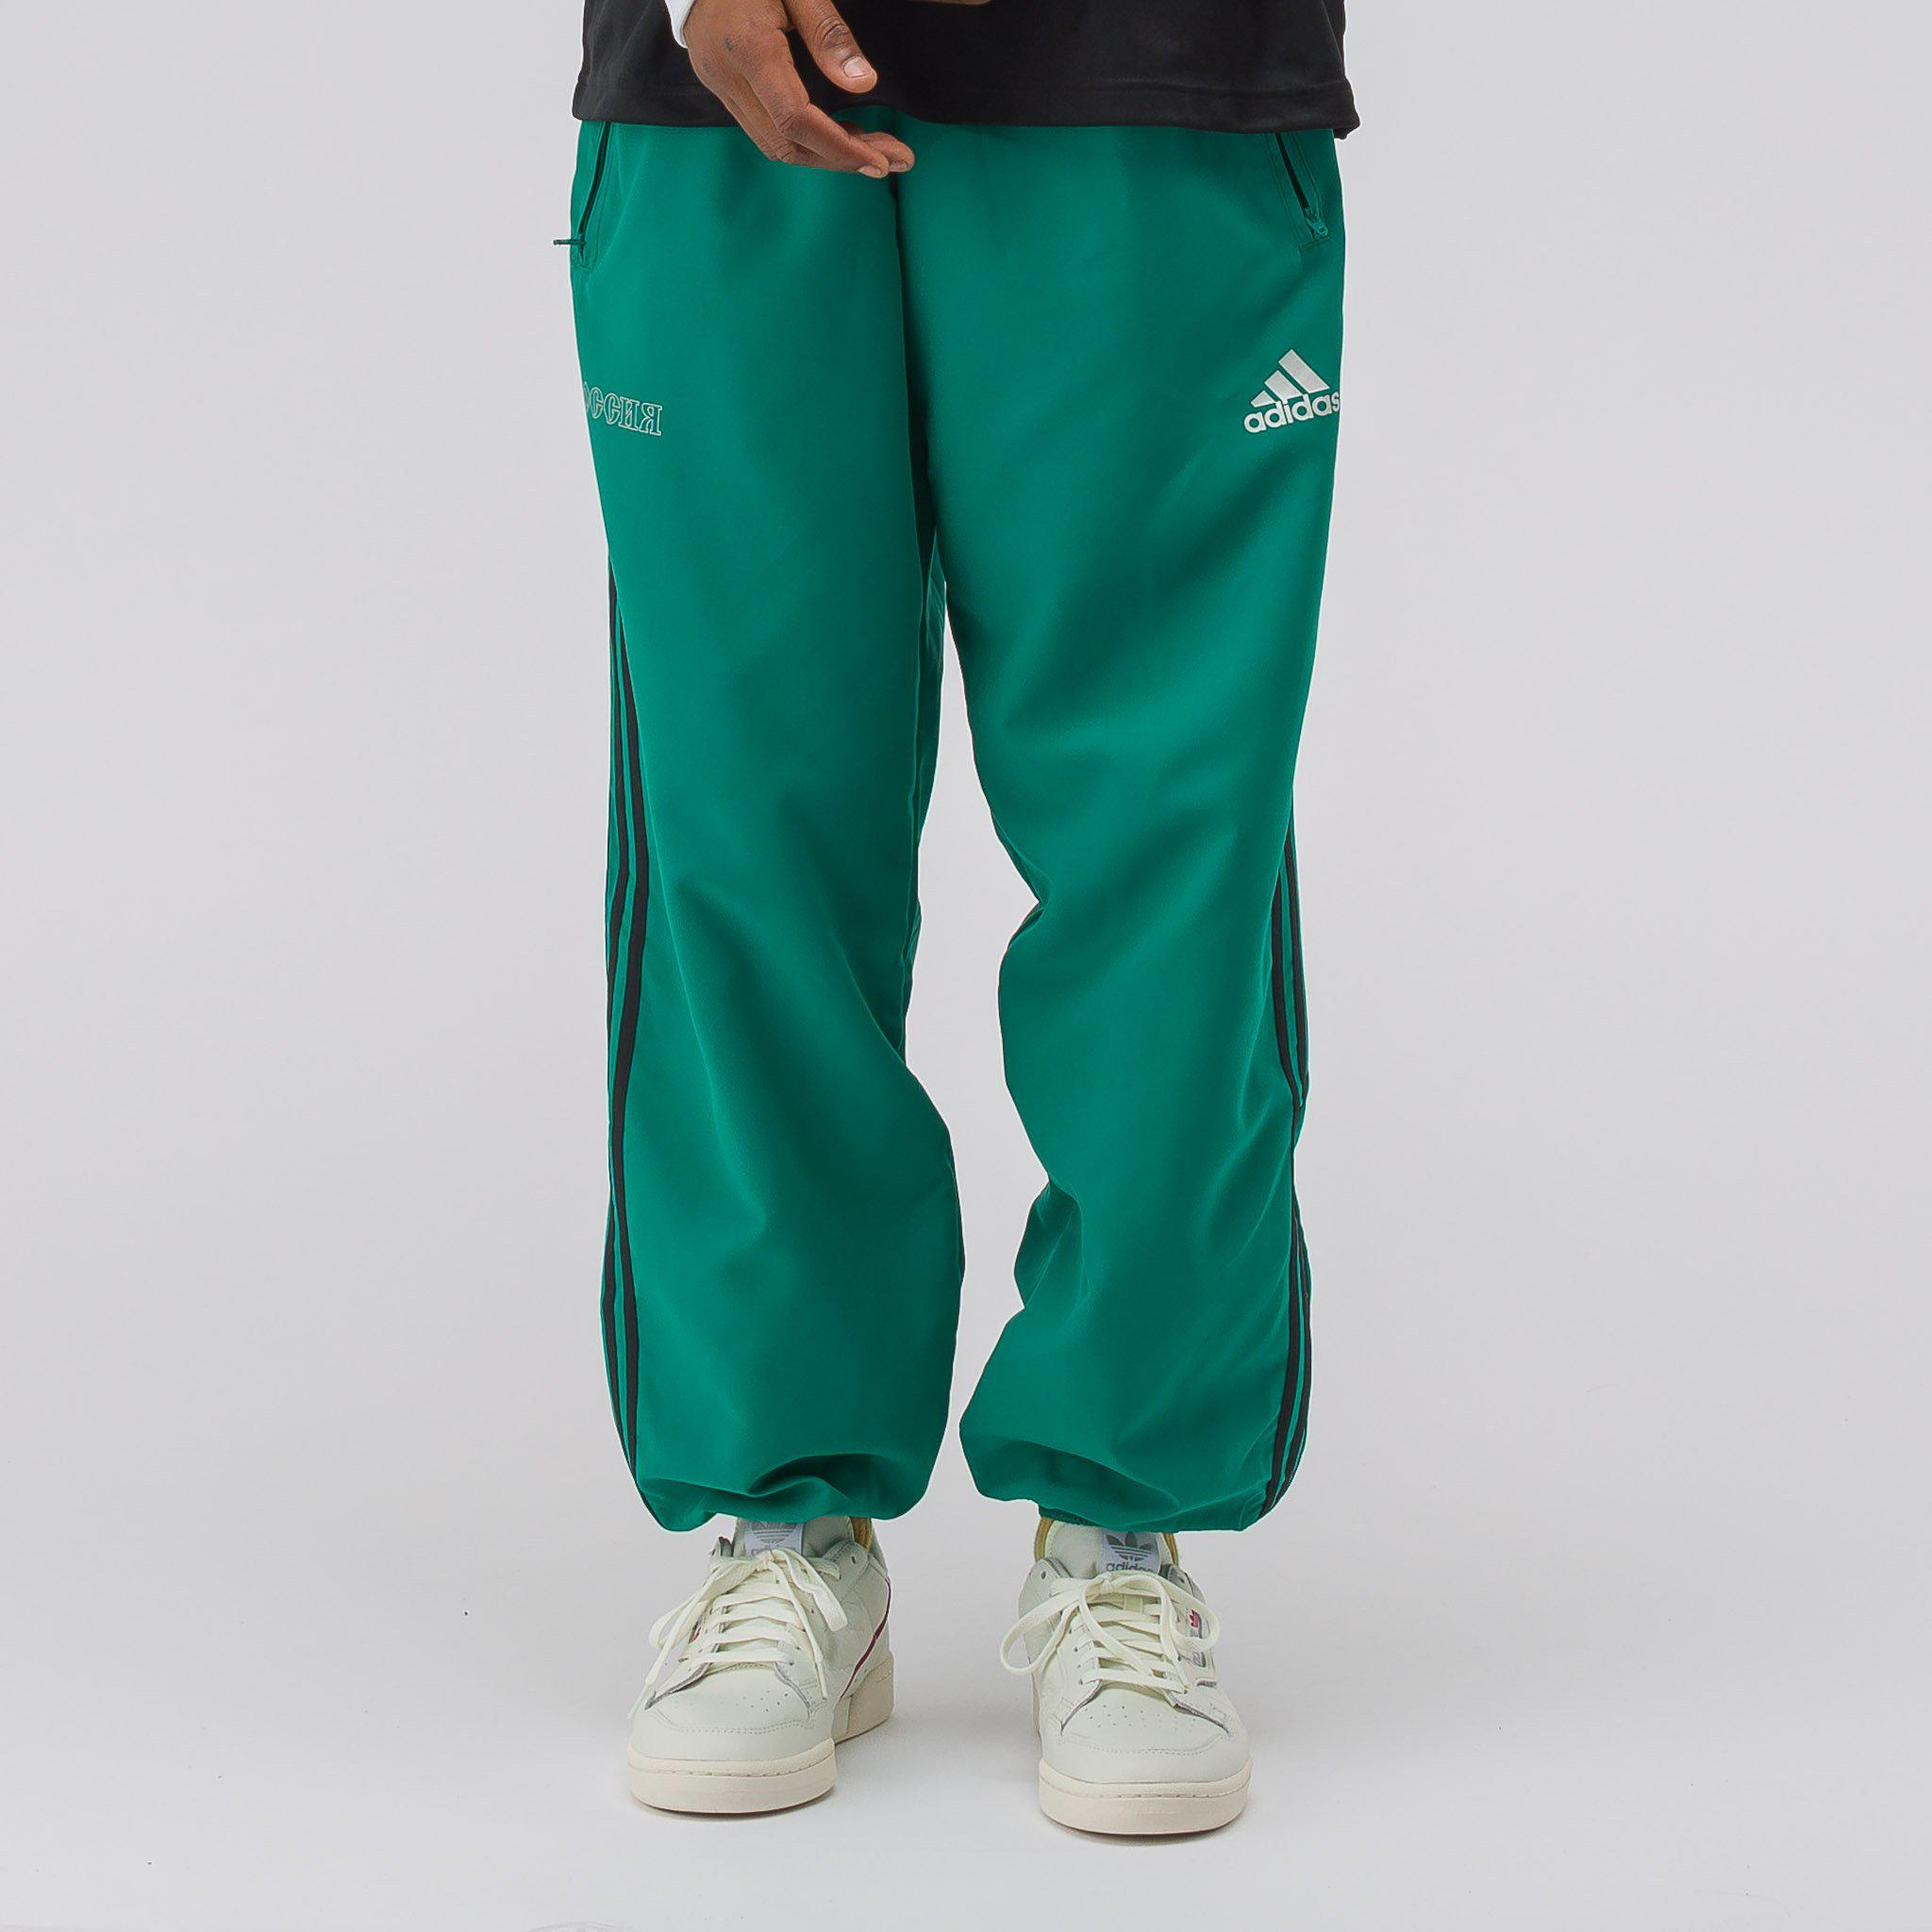 Gosha Rubchinskiy Synthetic X Adidas Woven Pants In Teal in